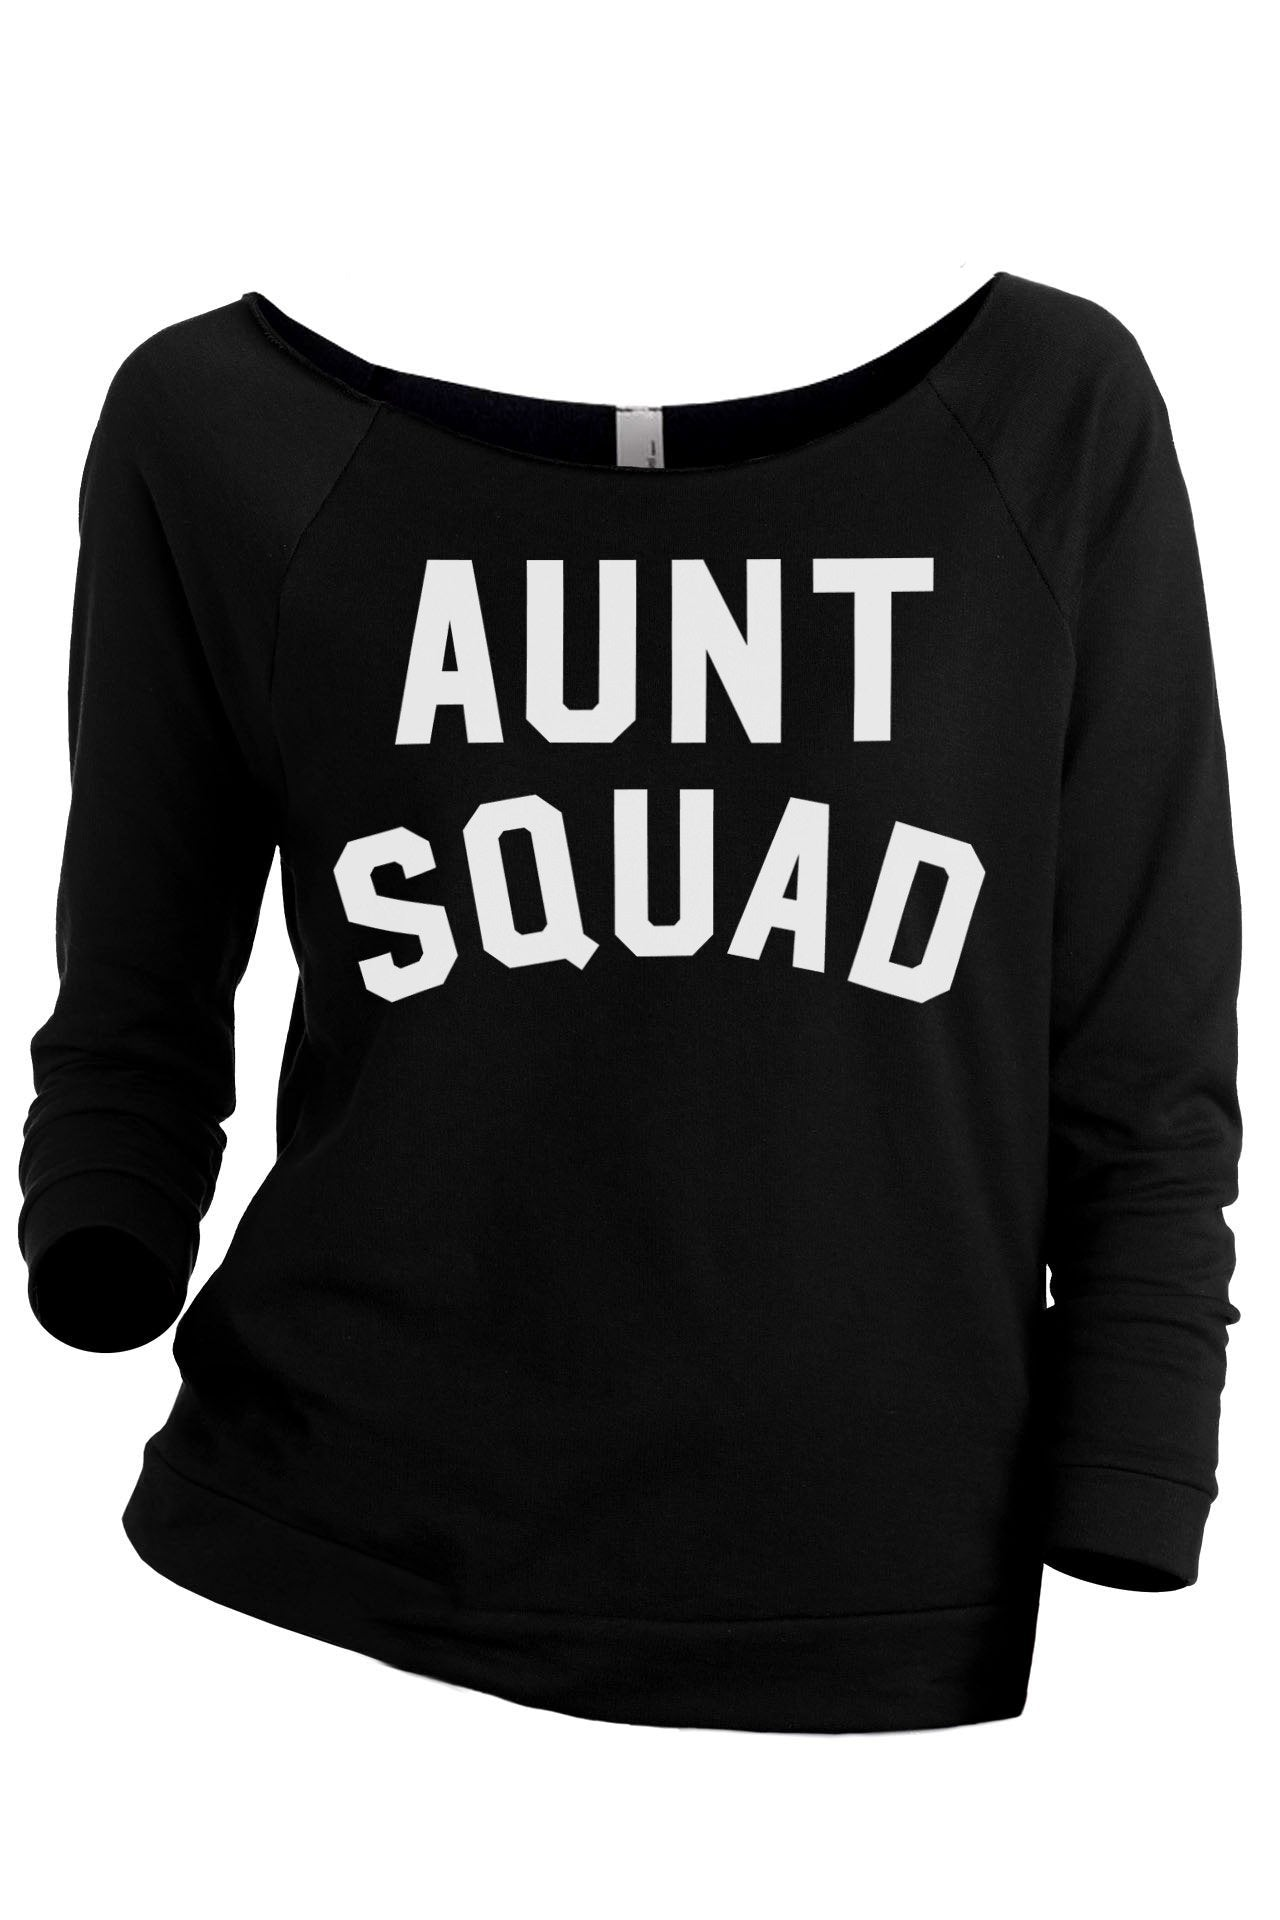 Aunt Squad Women's Graphic Printed Lightweight Slouchy 3/4 Sleeves Sweatshirt Sport Grey